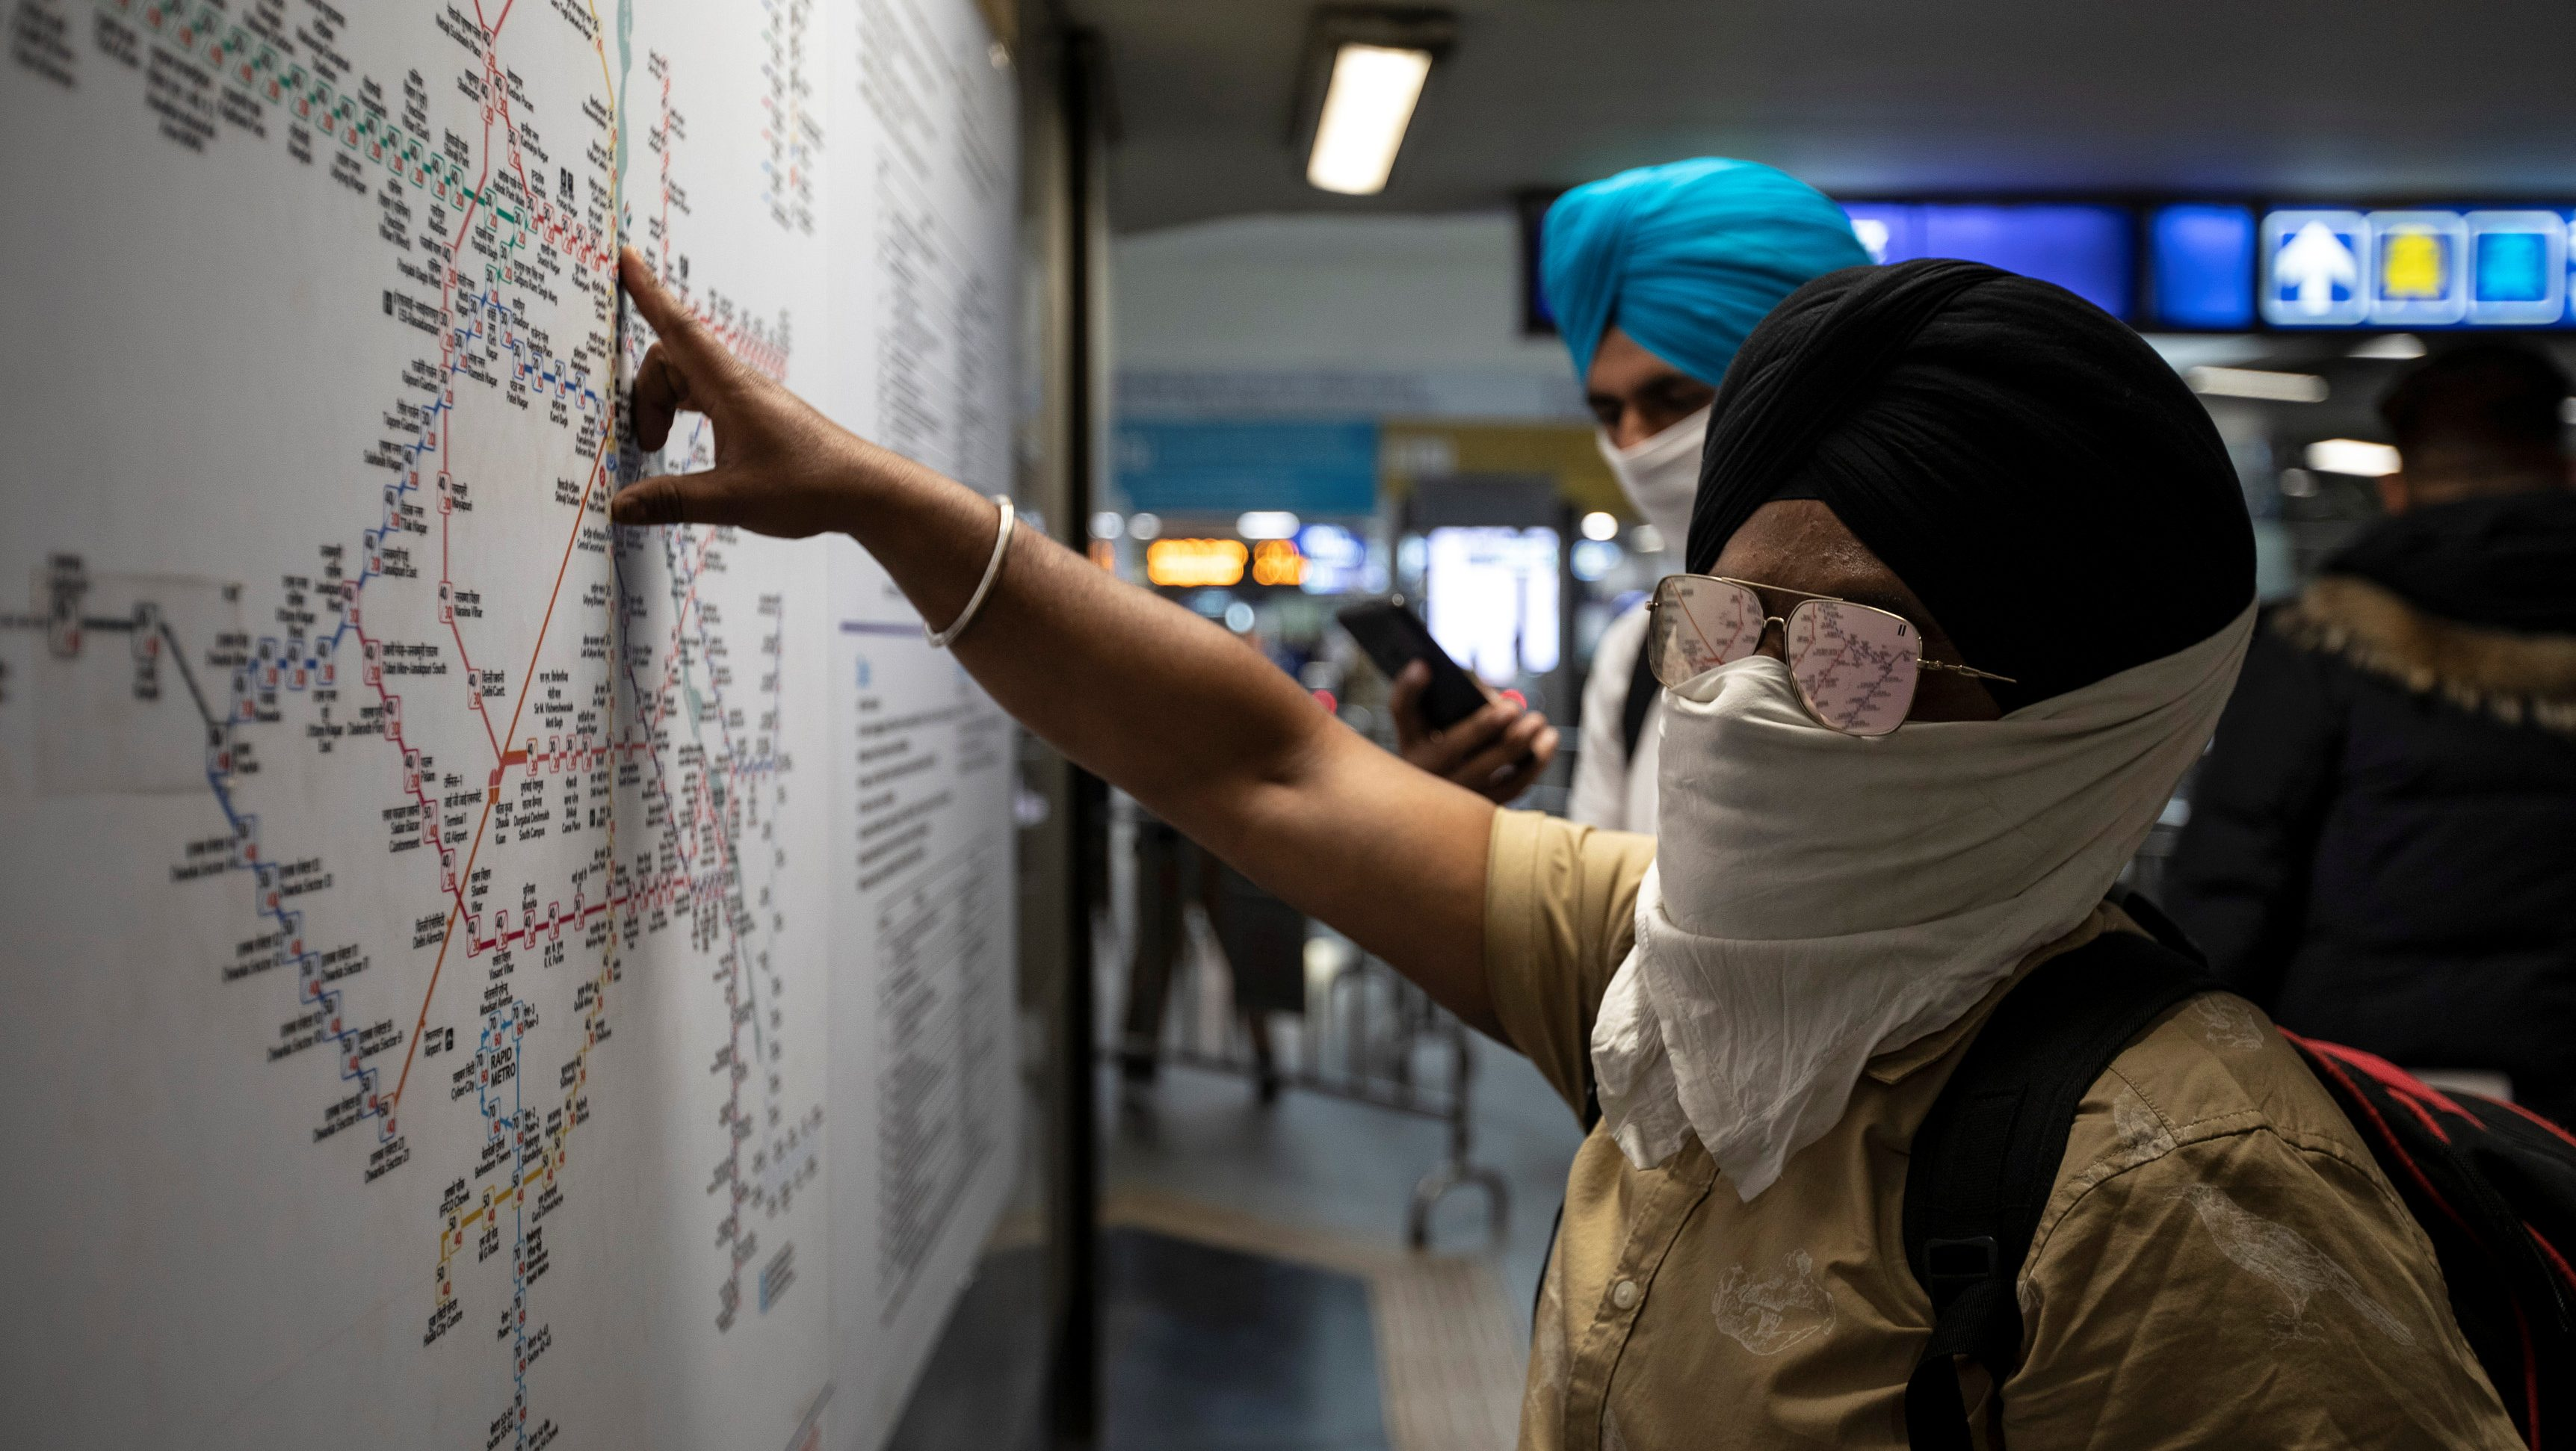 Commuters wearing handkerchiefs as masks look at a metro train map at a station, amid coronavirus disease (COVID-19) fears, in New Delhi, India, March 13, 2020. REUTERS/Danish Siddiqui